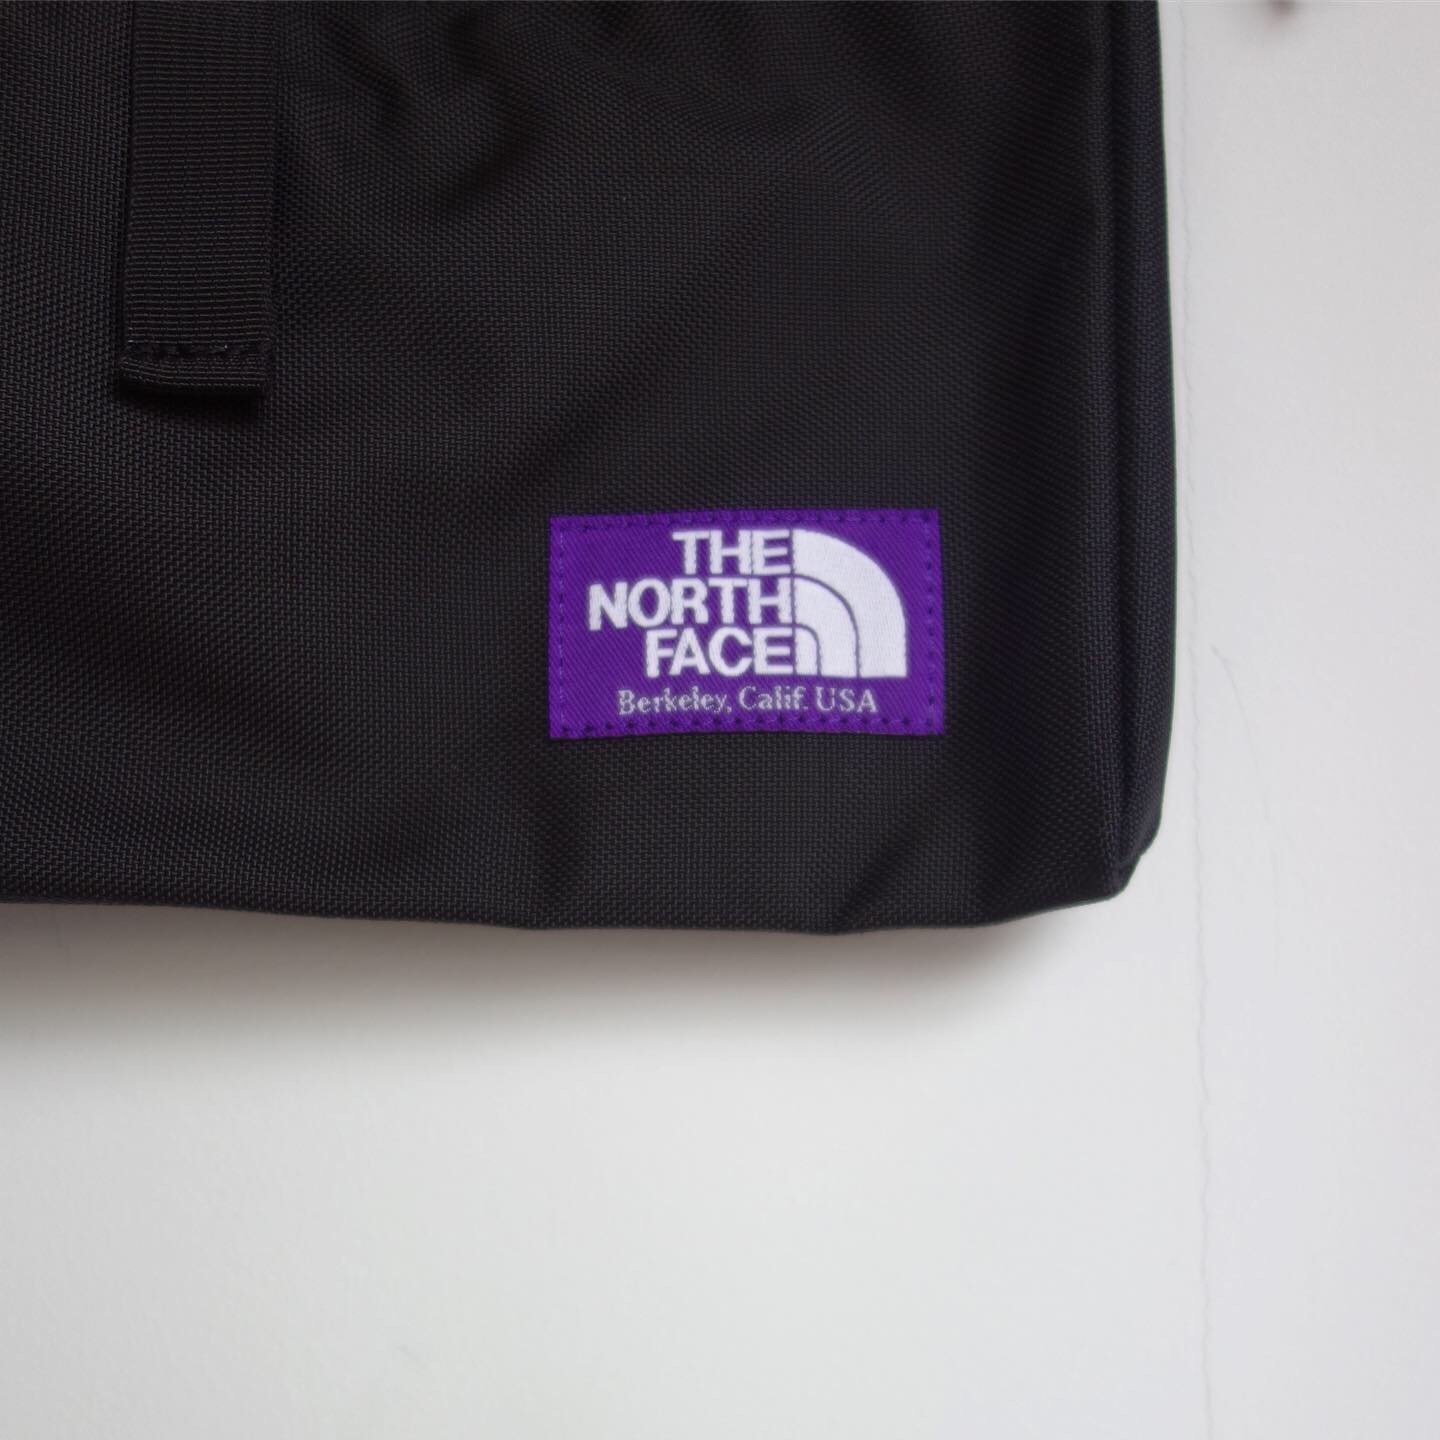 THE NORTH FACE PURPLE LABEL : Small Shoulder Bag_a0234452_15575815.jpg